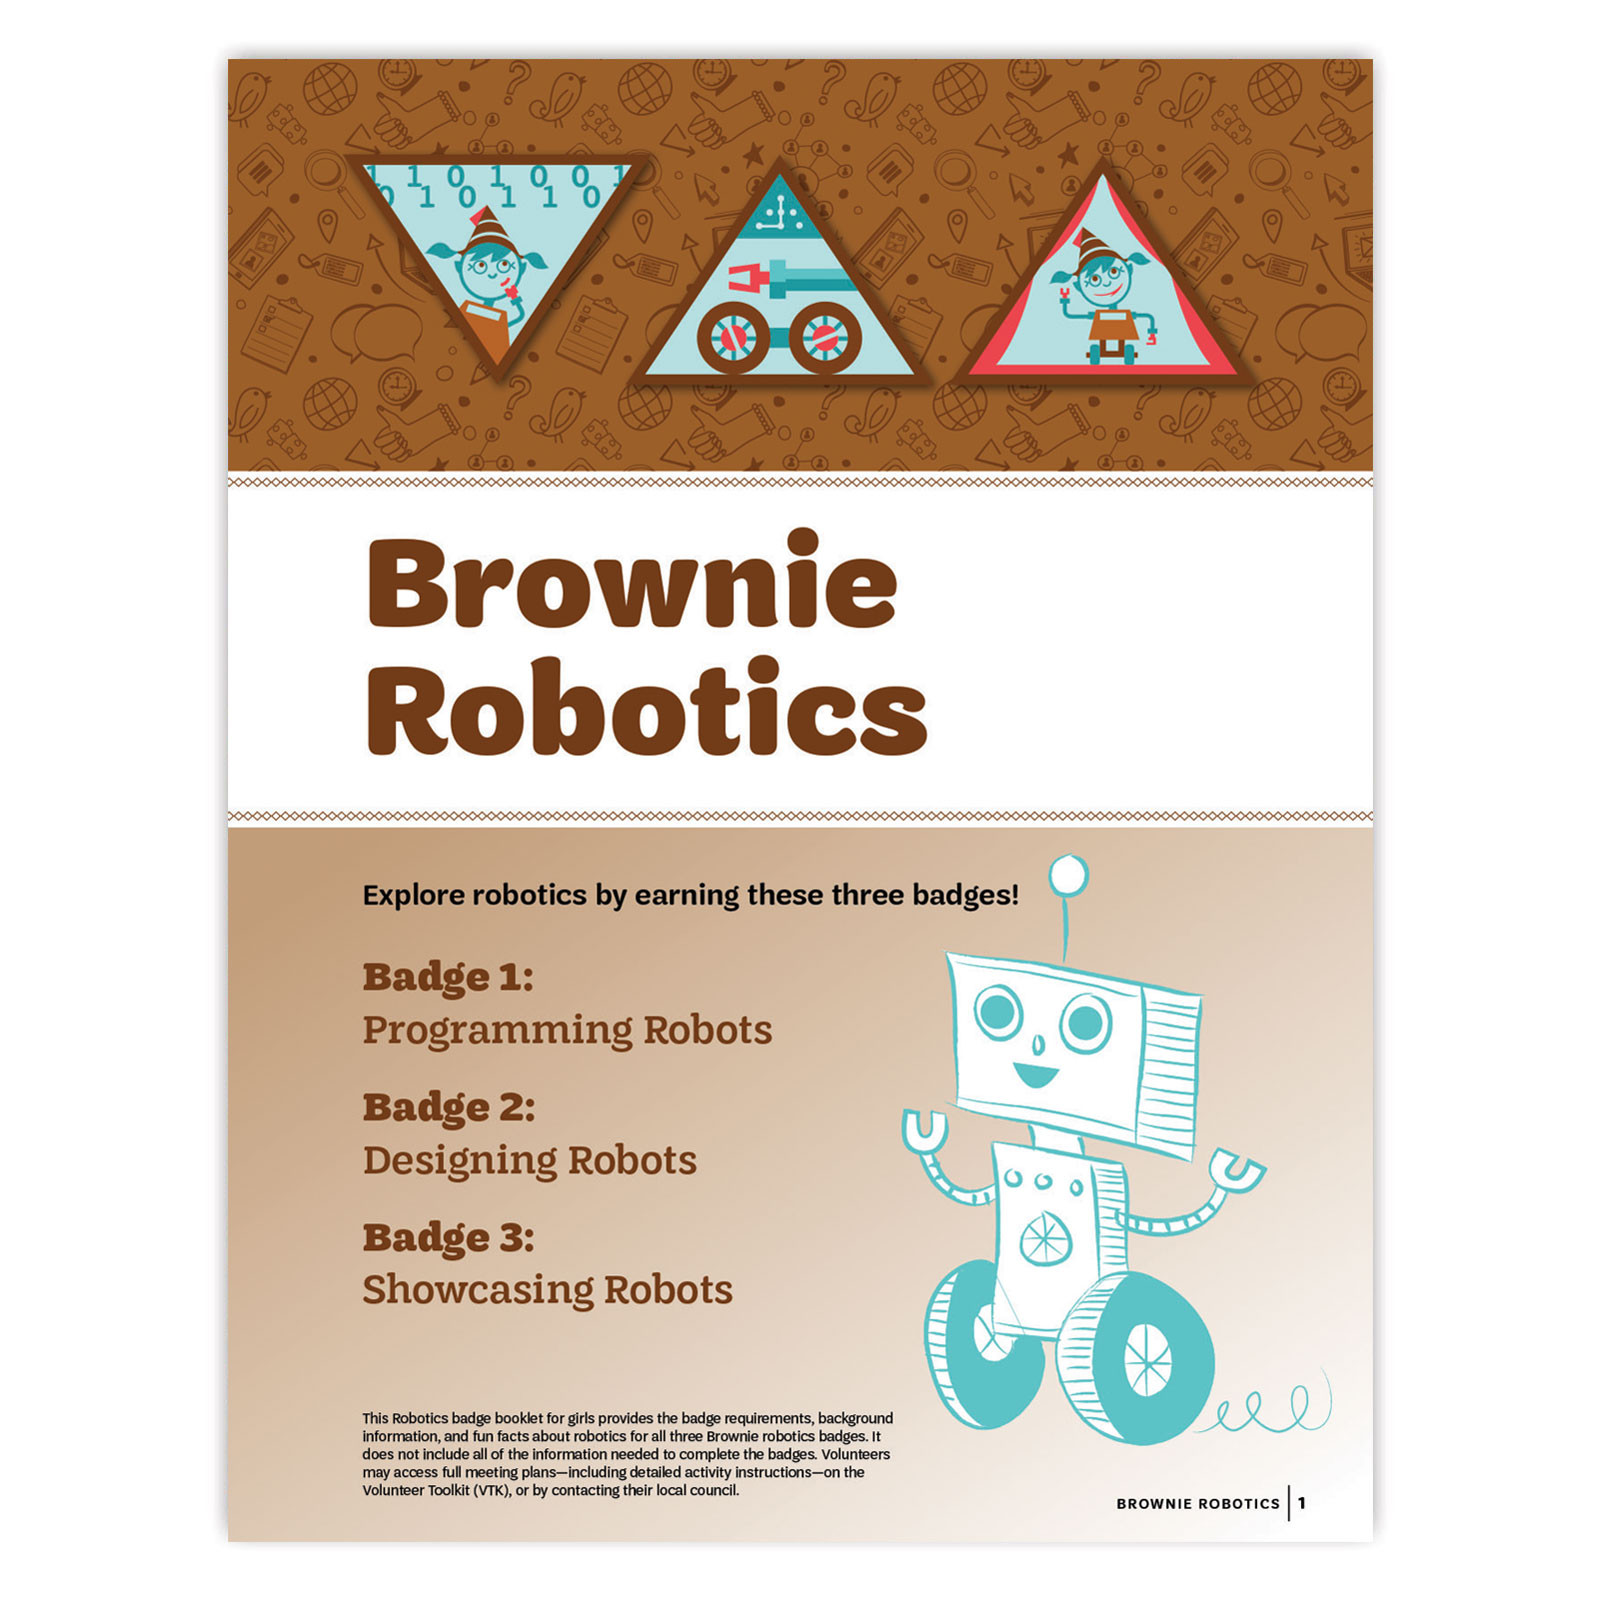 Brownie Robotics Image.jpg